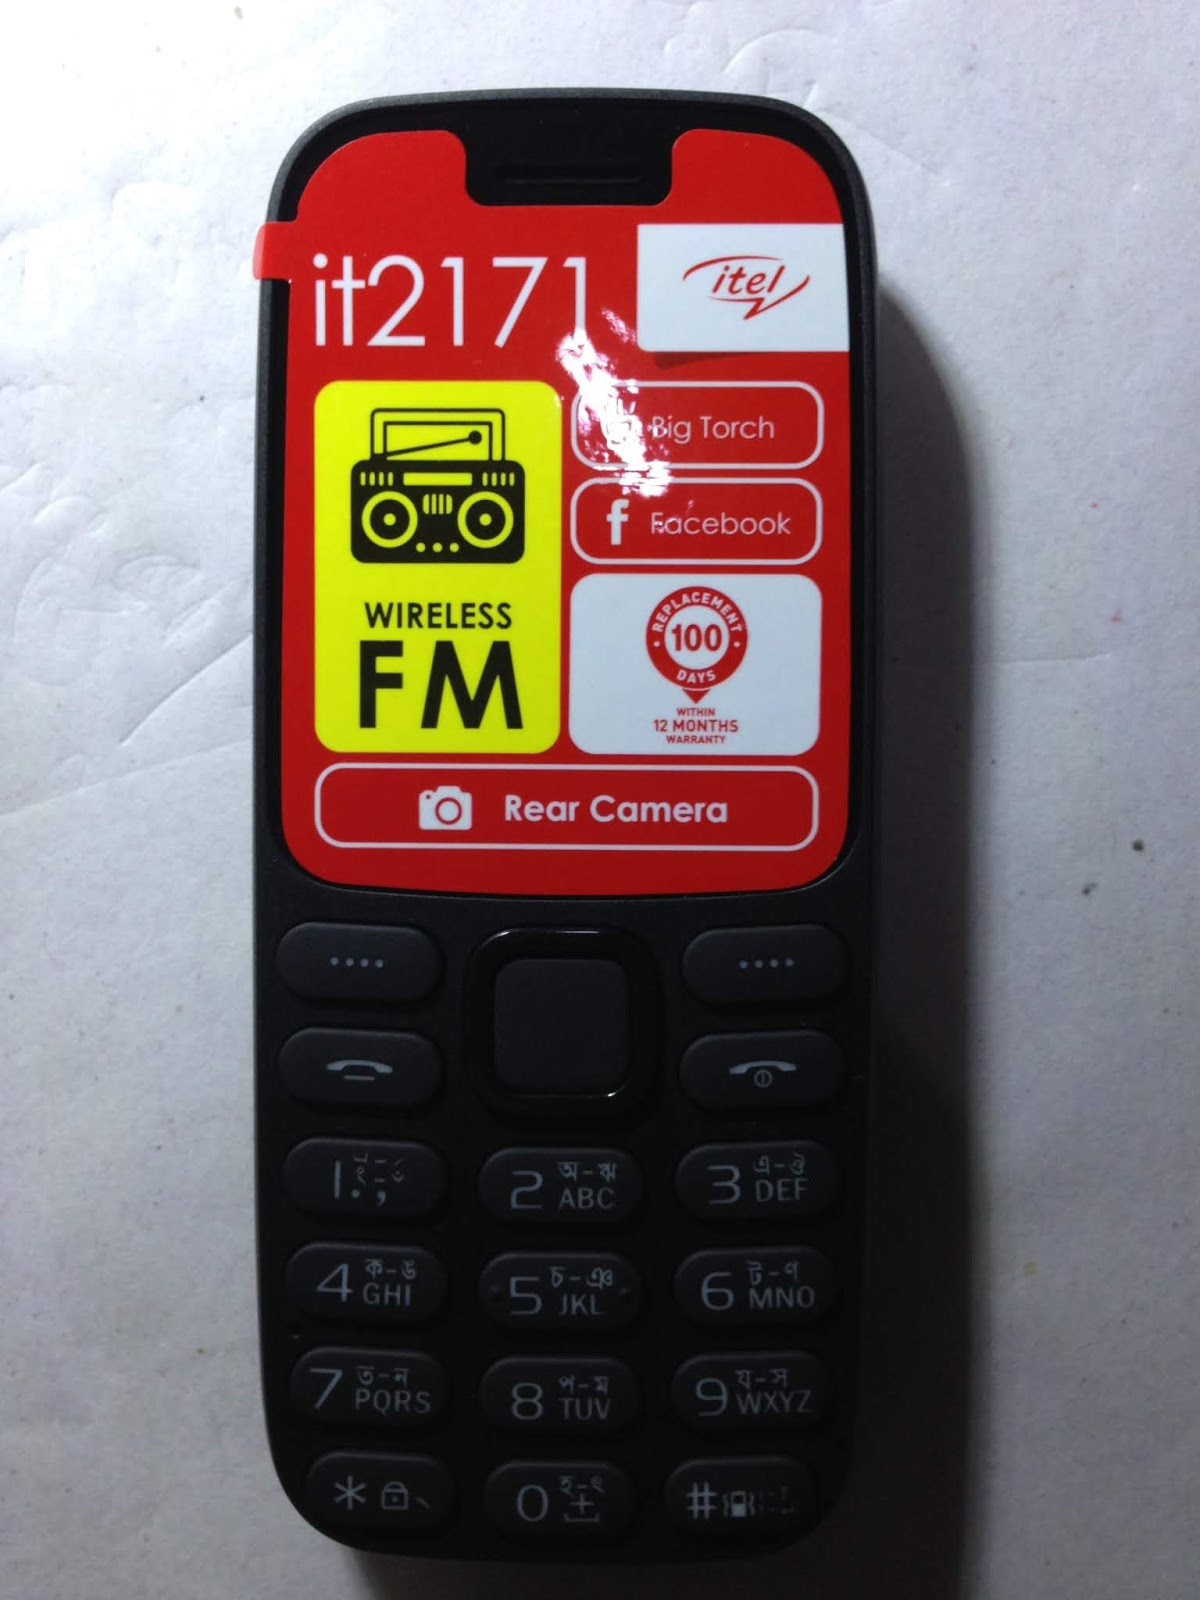 Itel it2171 sc6531e flash file download without password - waiting